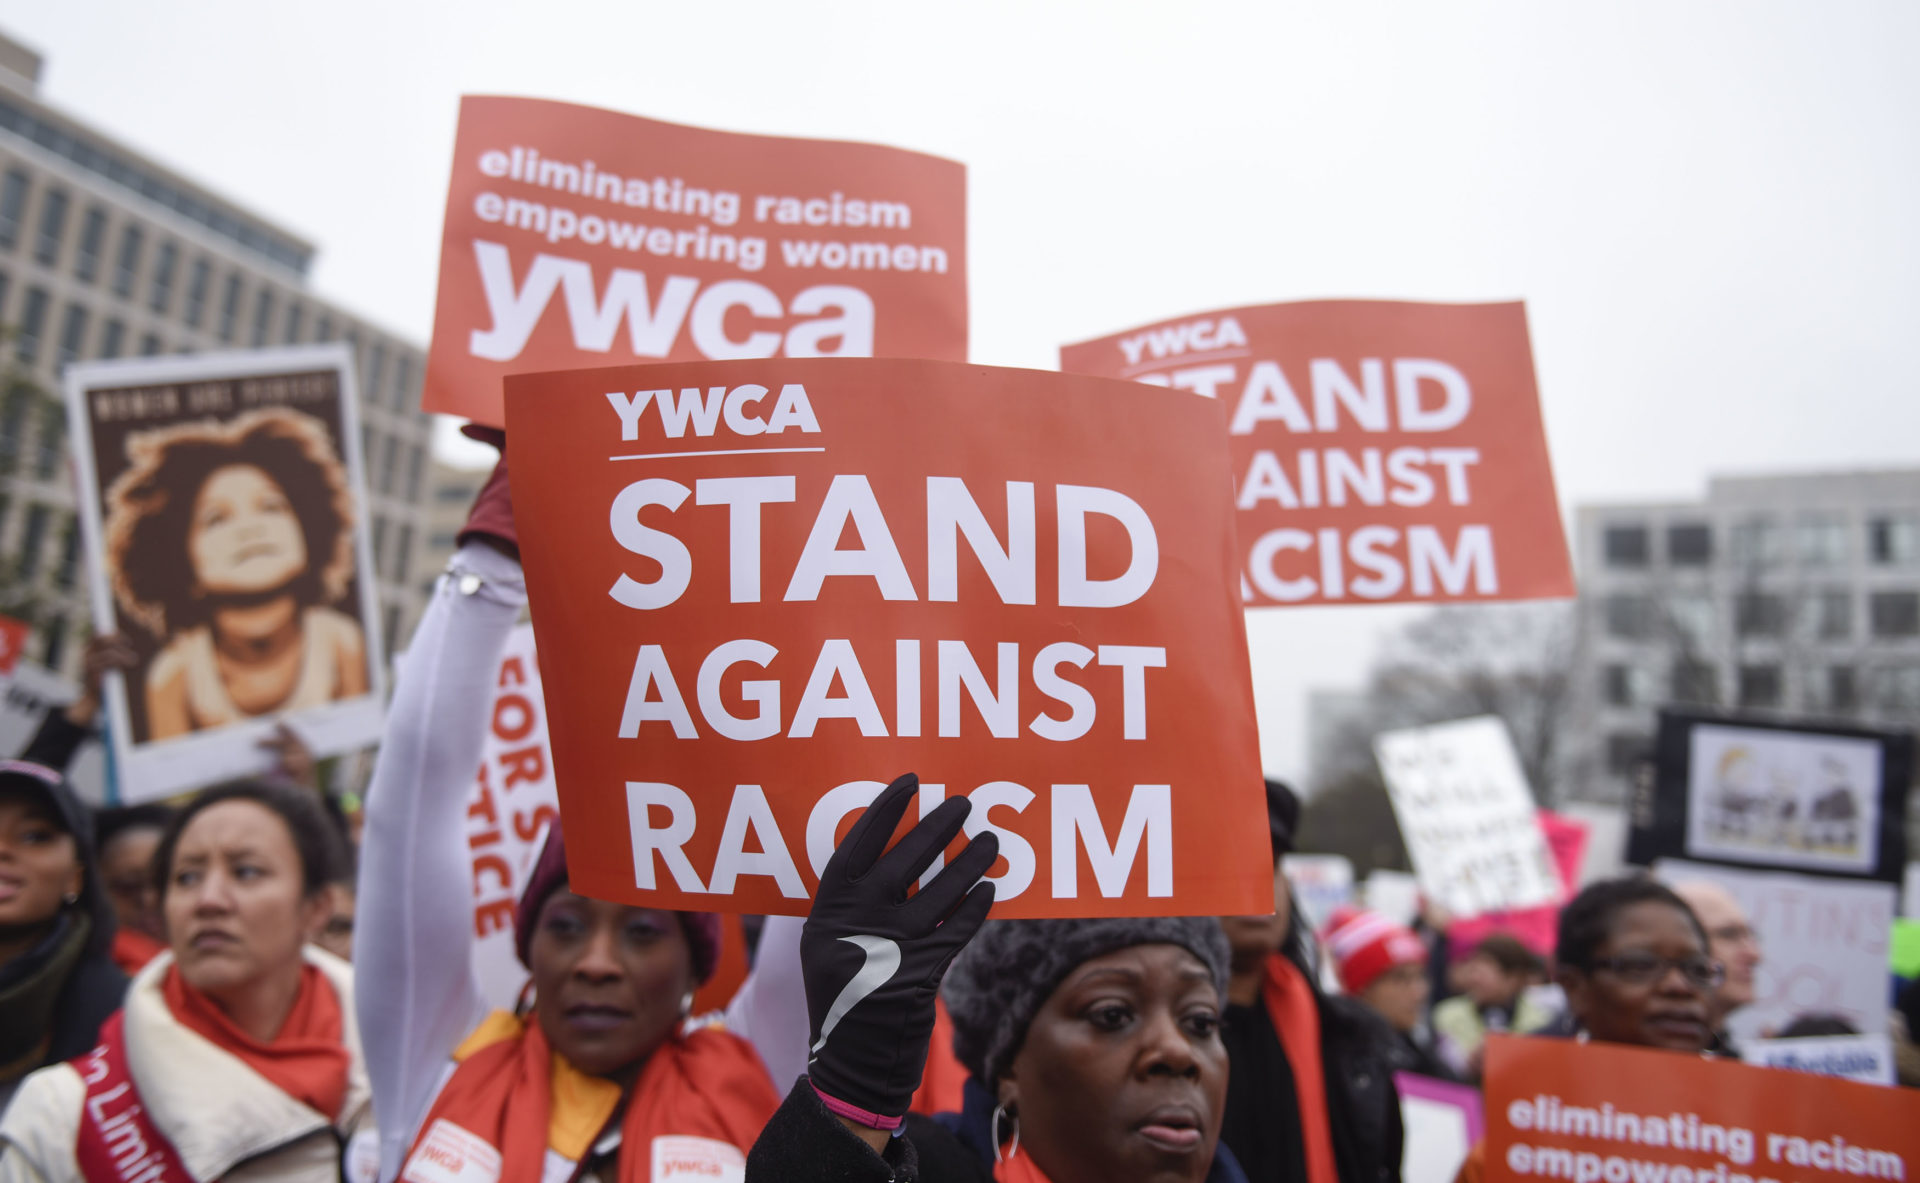 Protest signs that say Stand Against Racism - racial justice award